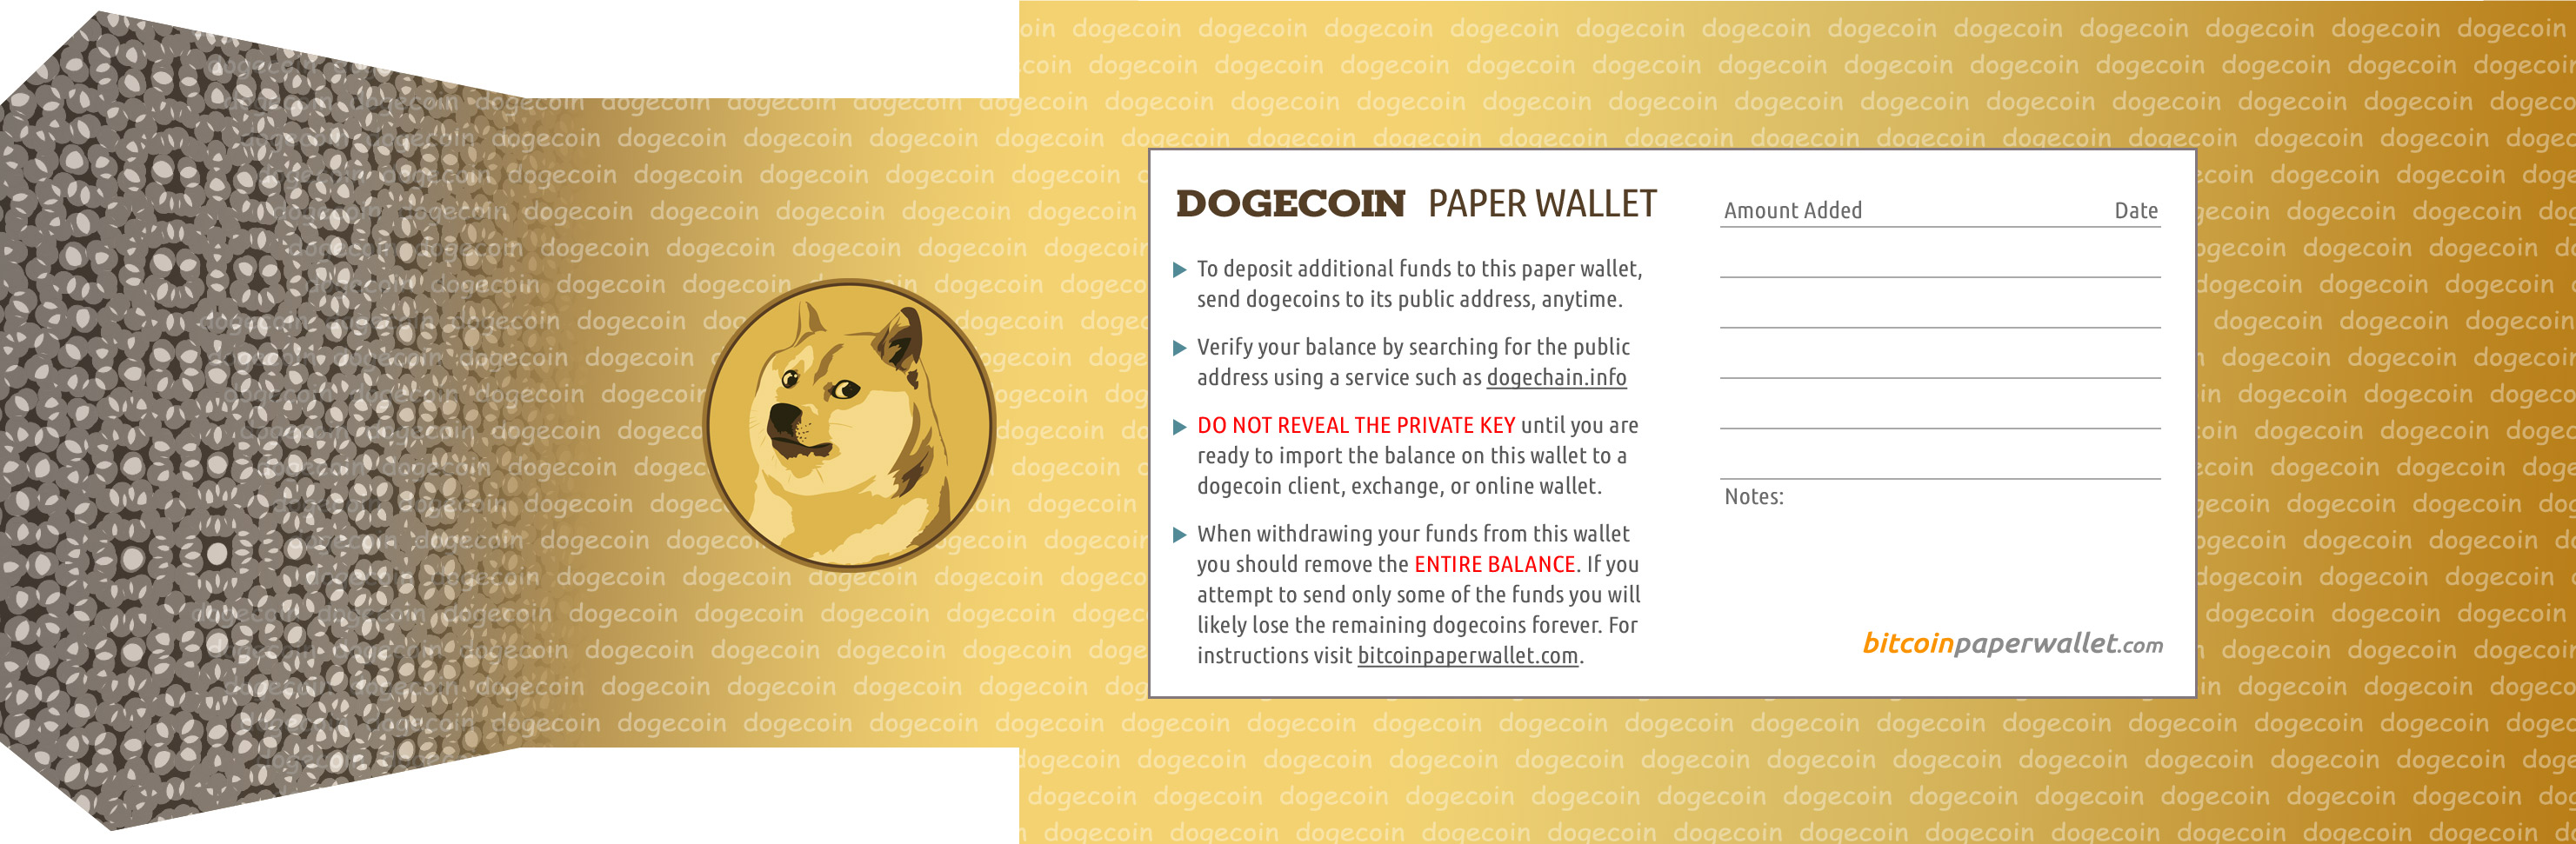 Dogecoin paper wallet generator  Wow! Many coin  Such shiny